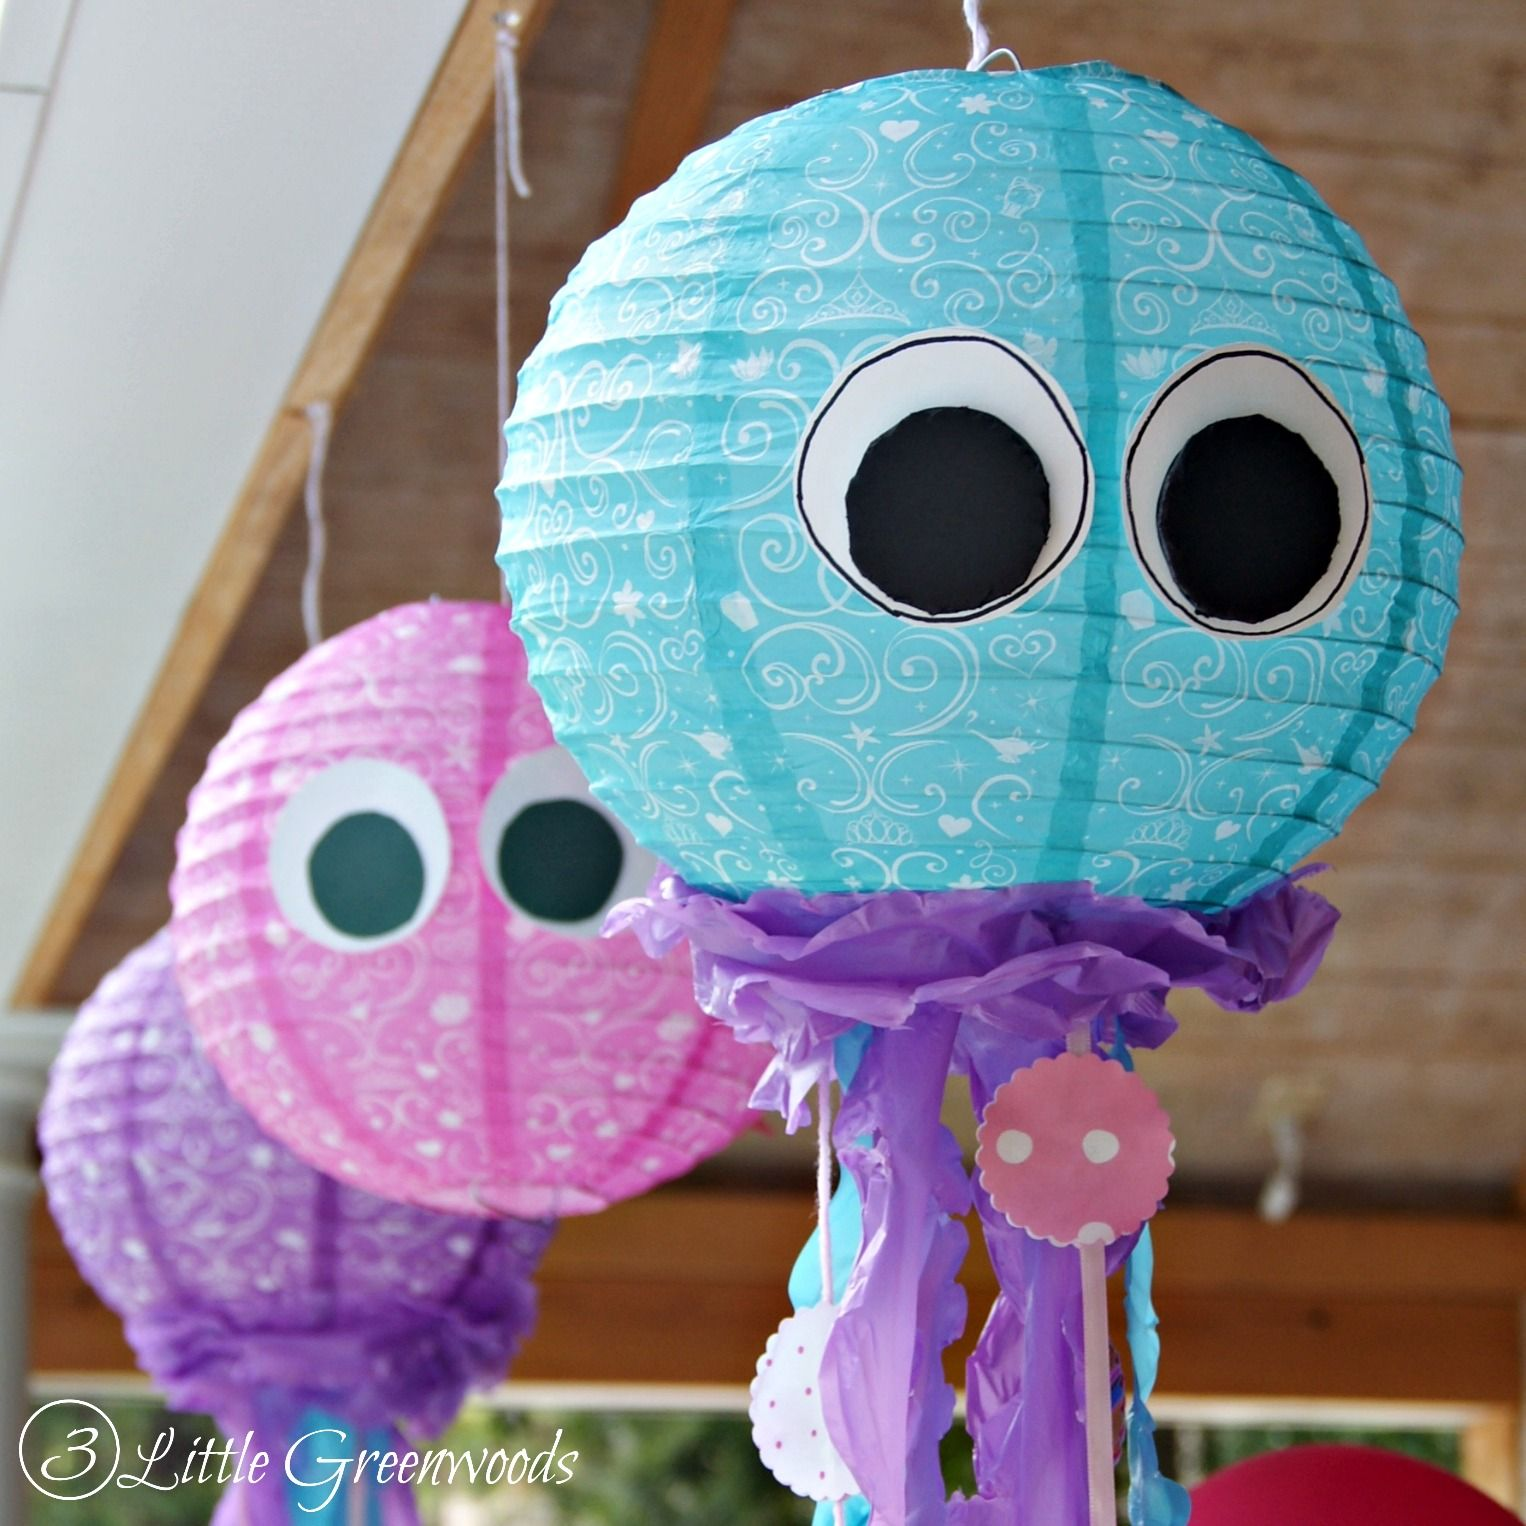 Paper Lantern Jellyfish Classy Simple Paper Lantern Jellyfish For A Little Mermaid Birthday Party Decorating Design